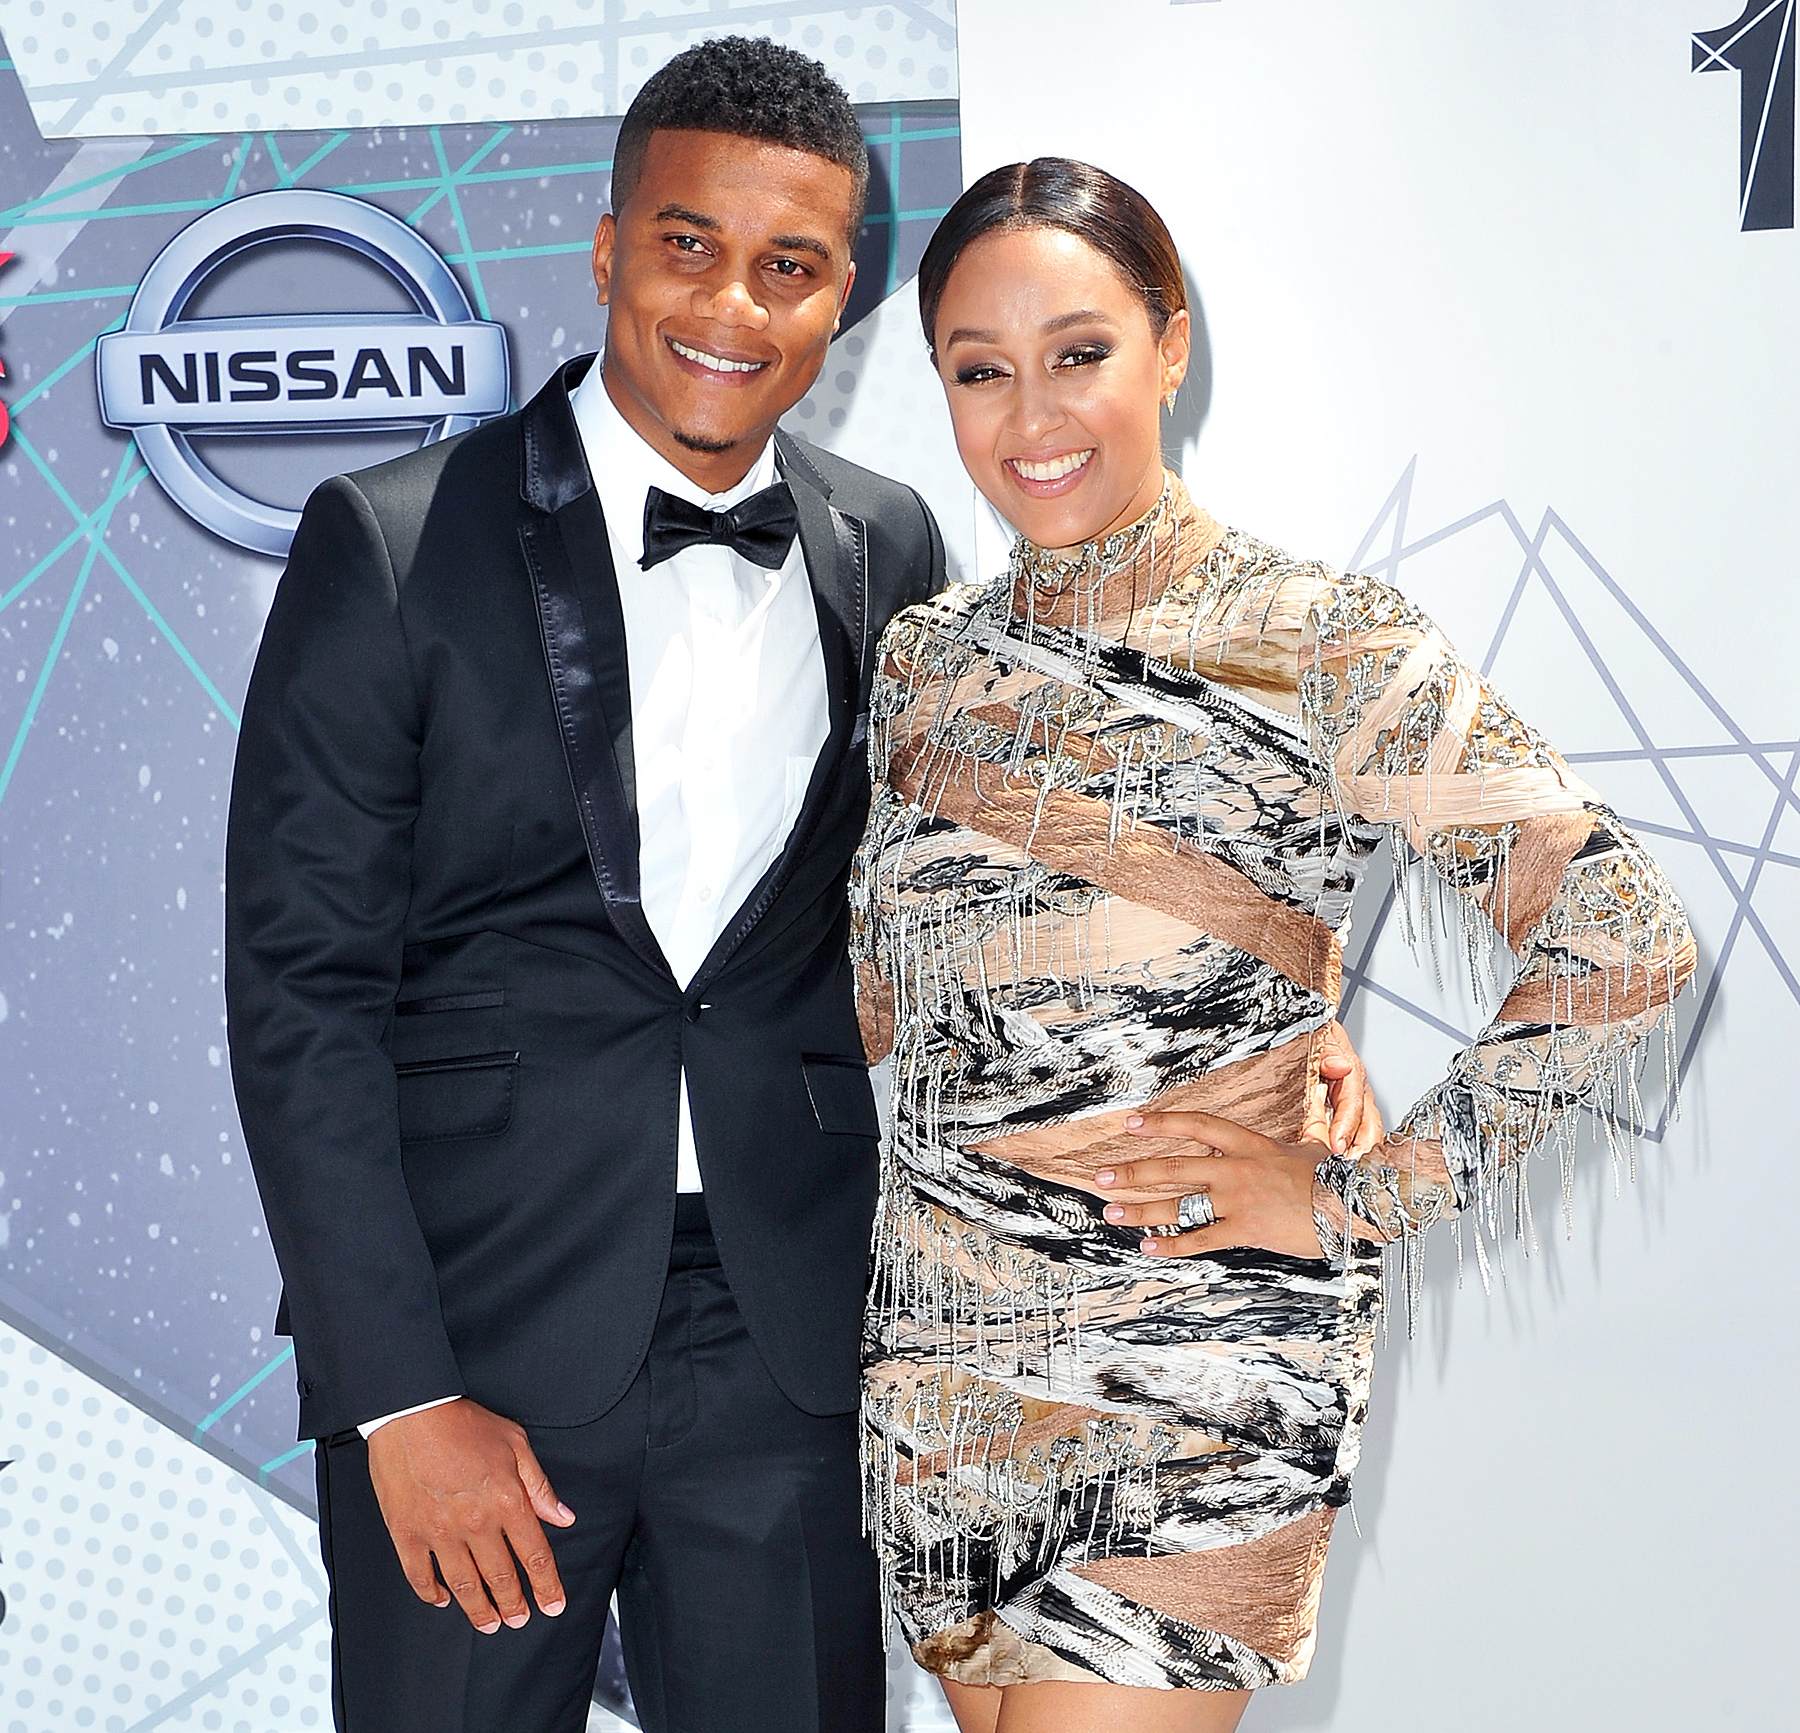 Tia Mowry-Hardrict Posts Adorable Photo With Her Newborn Girl